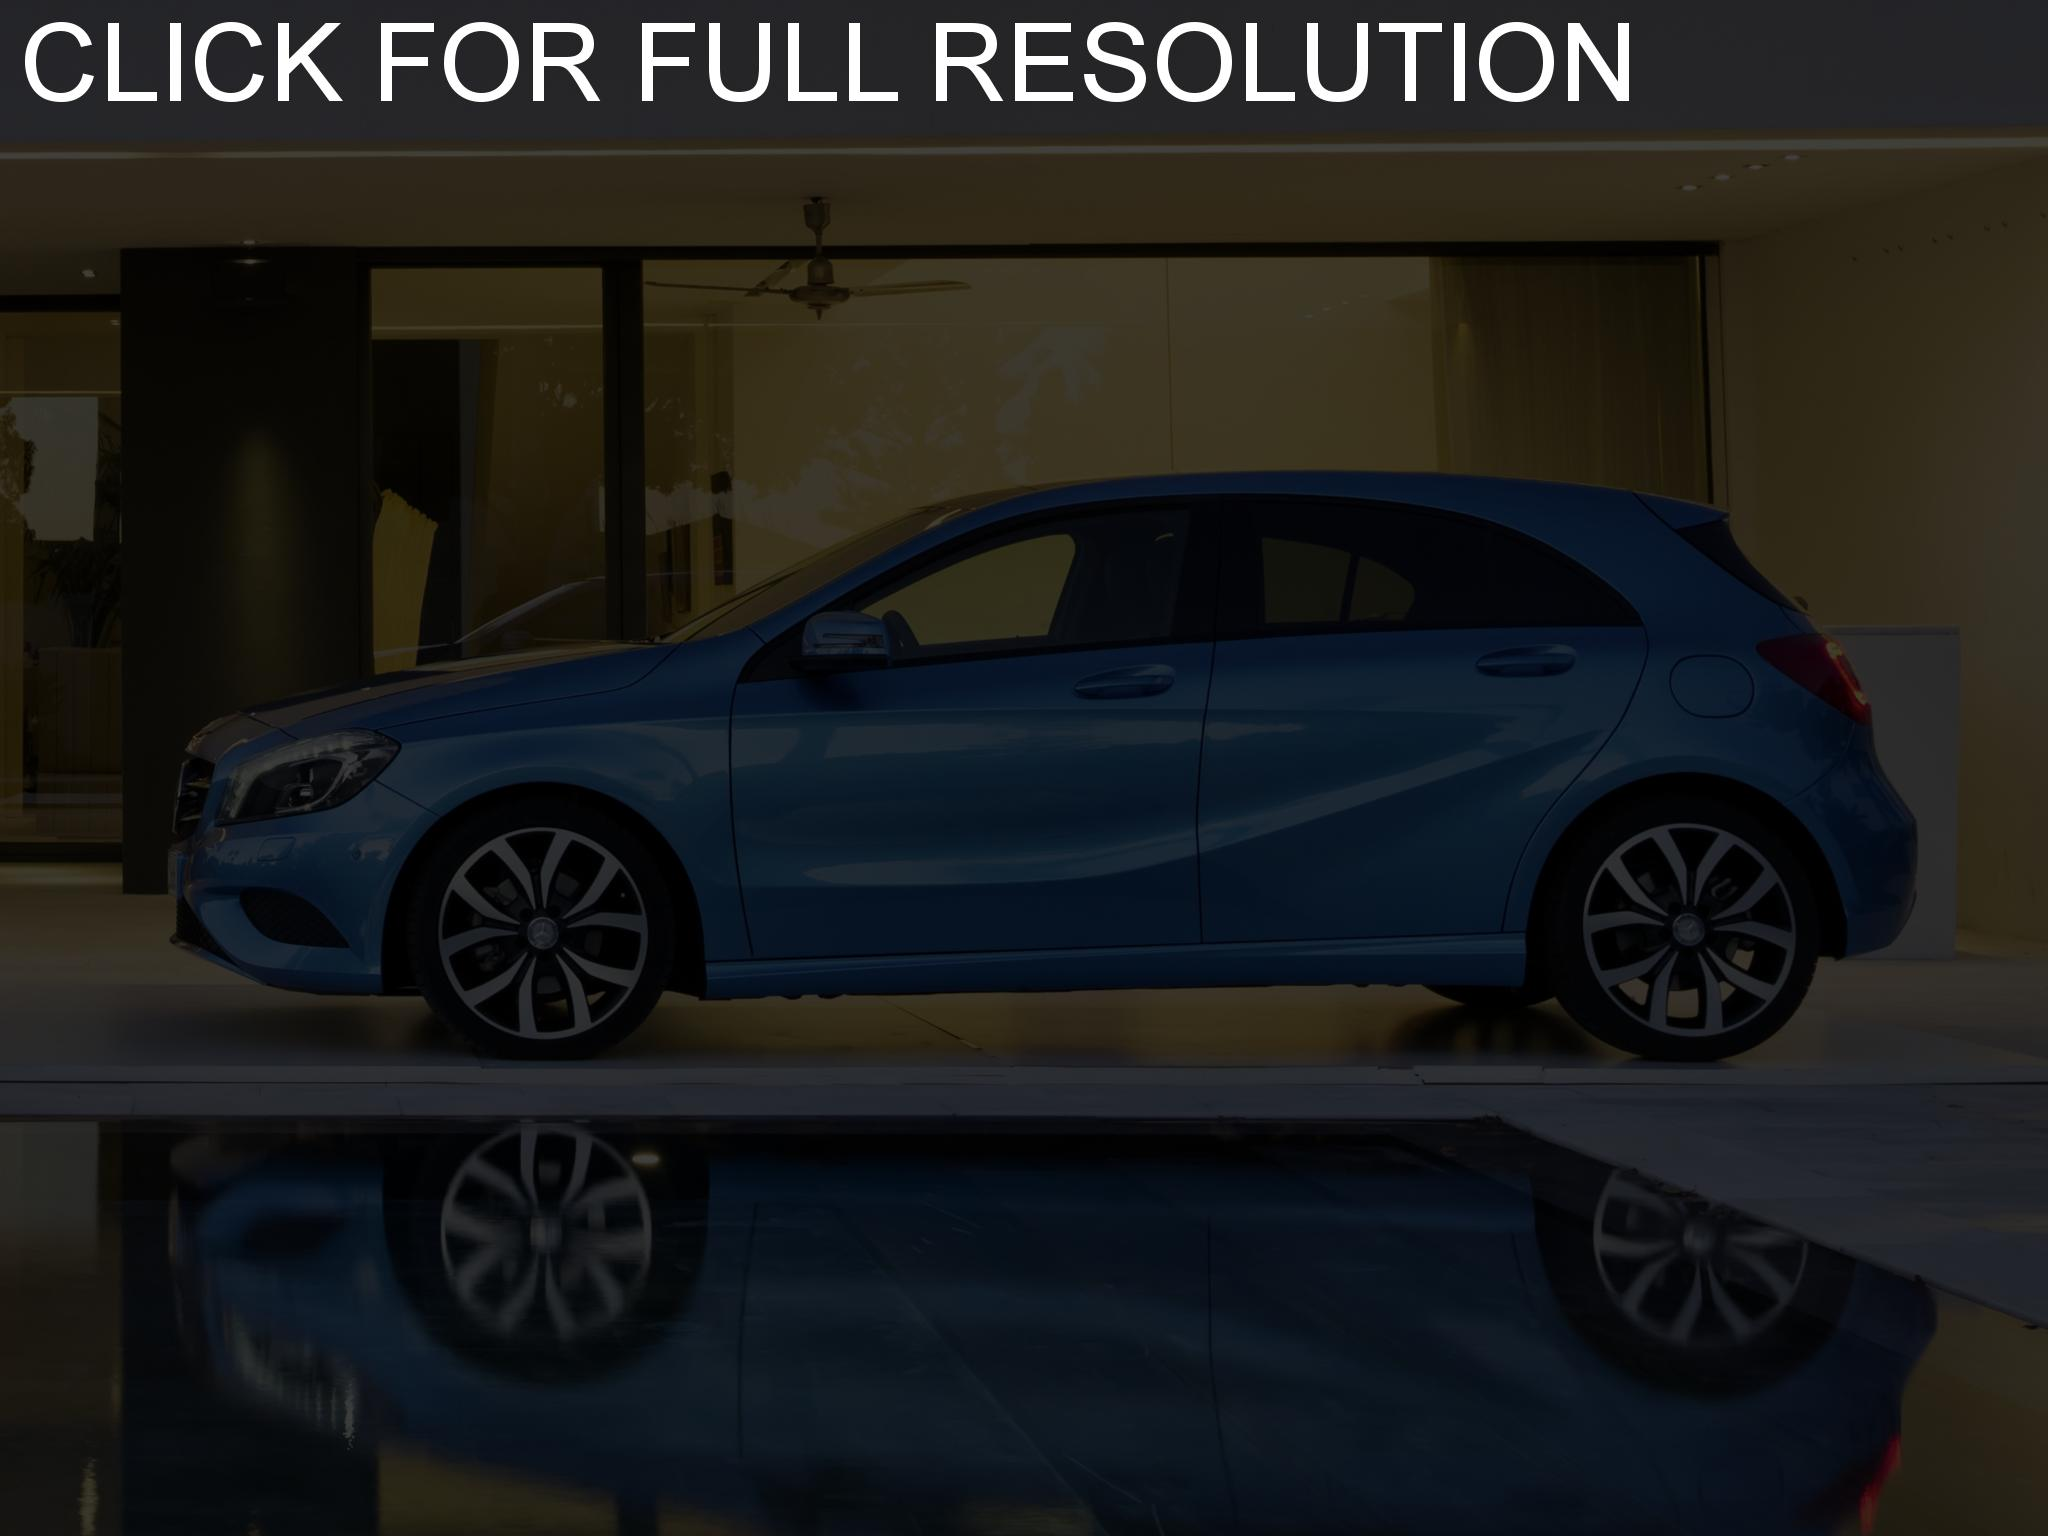 Mercedes-benz a180 photo - 1